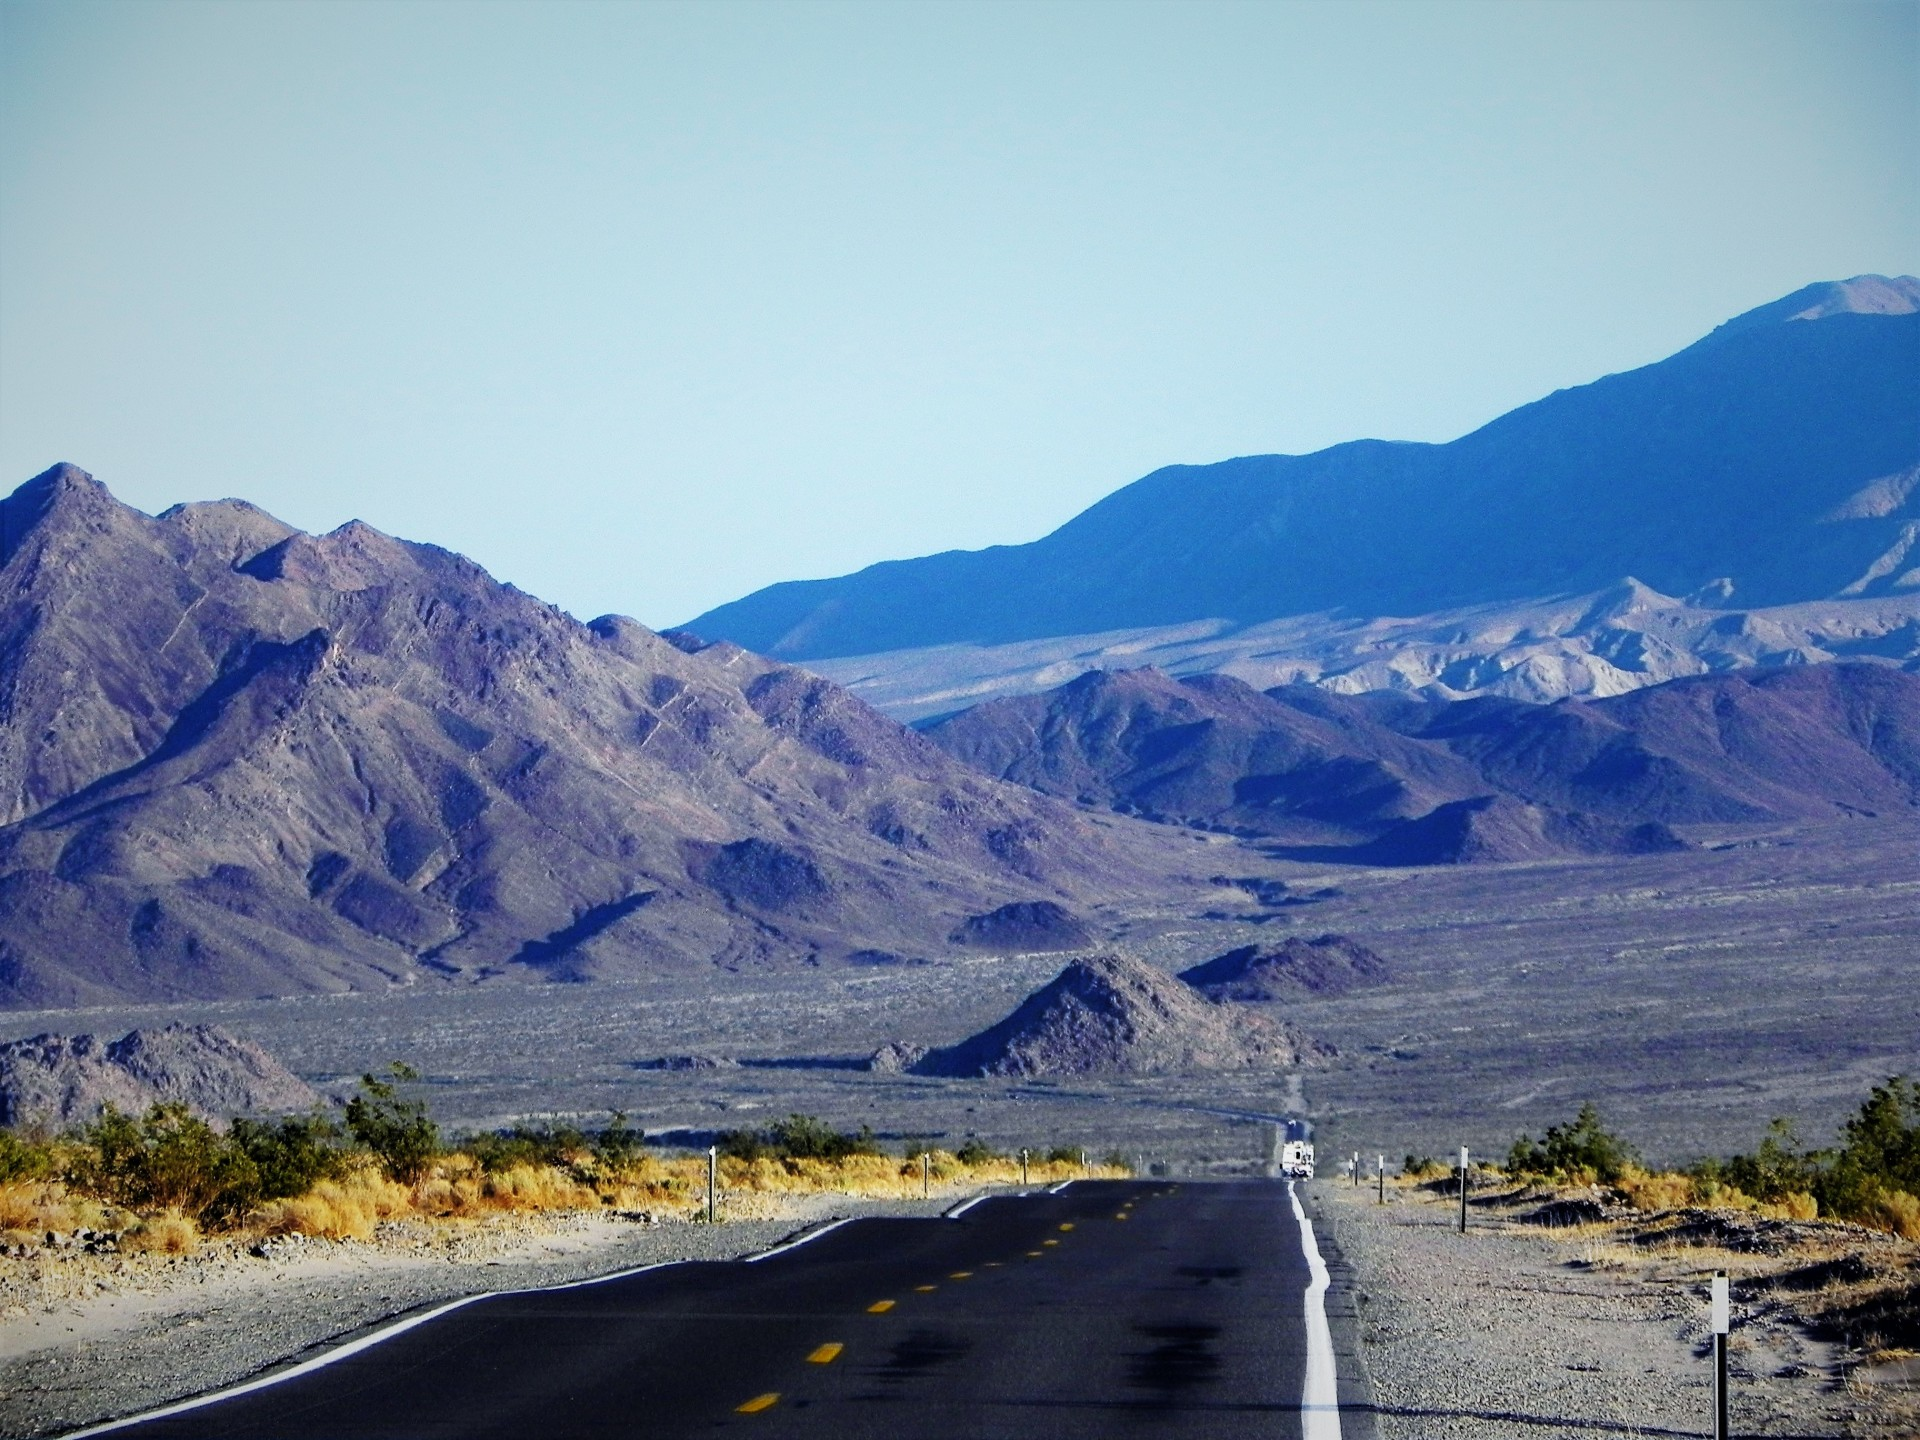 Road trip, desert, Nevada, Nature, National Geographic, Mohave